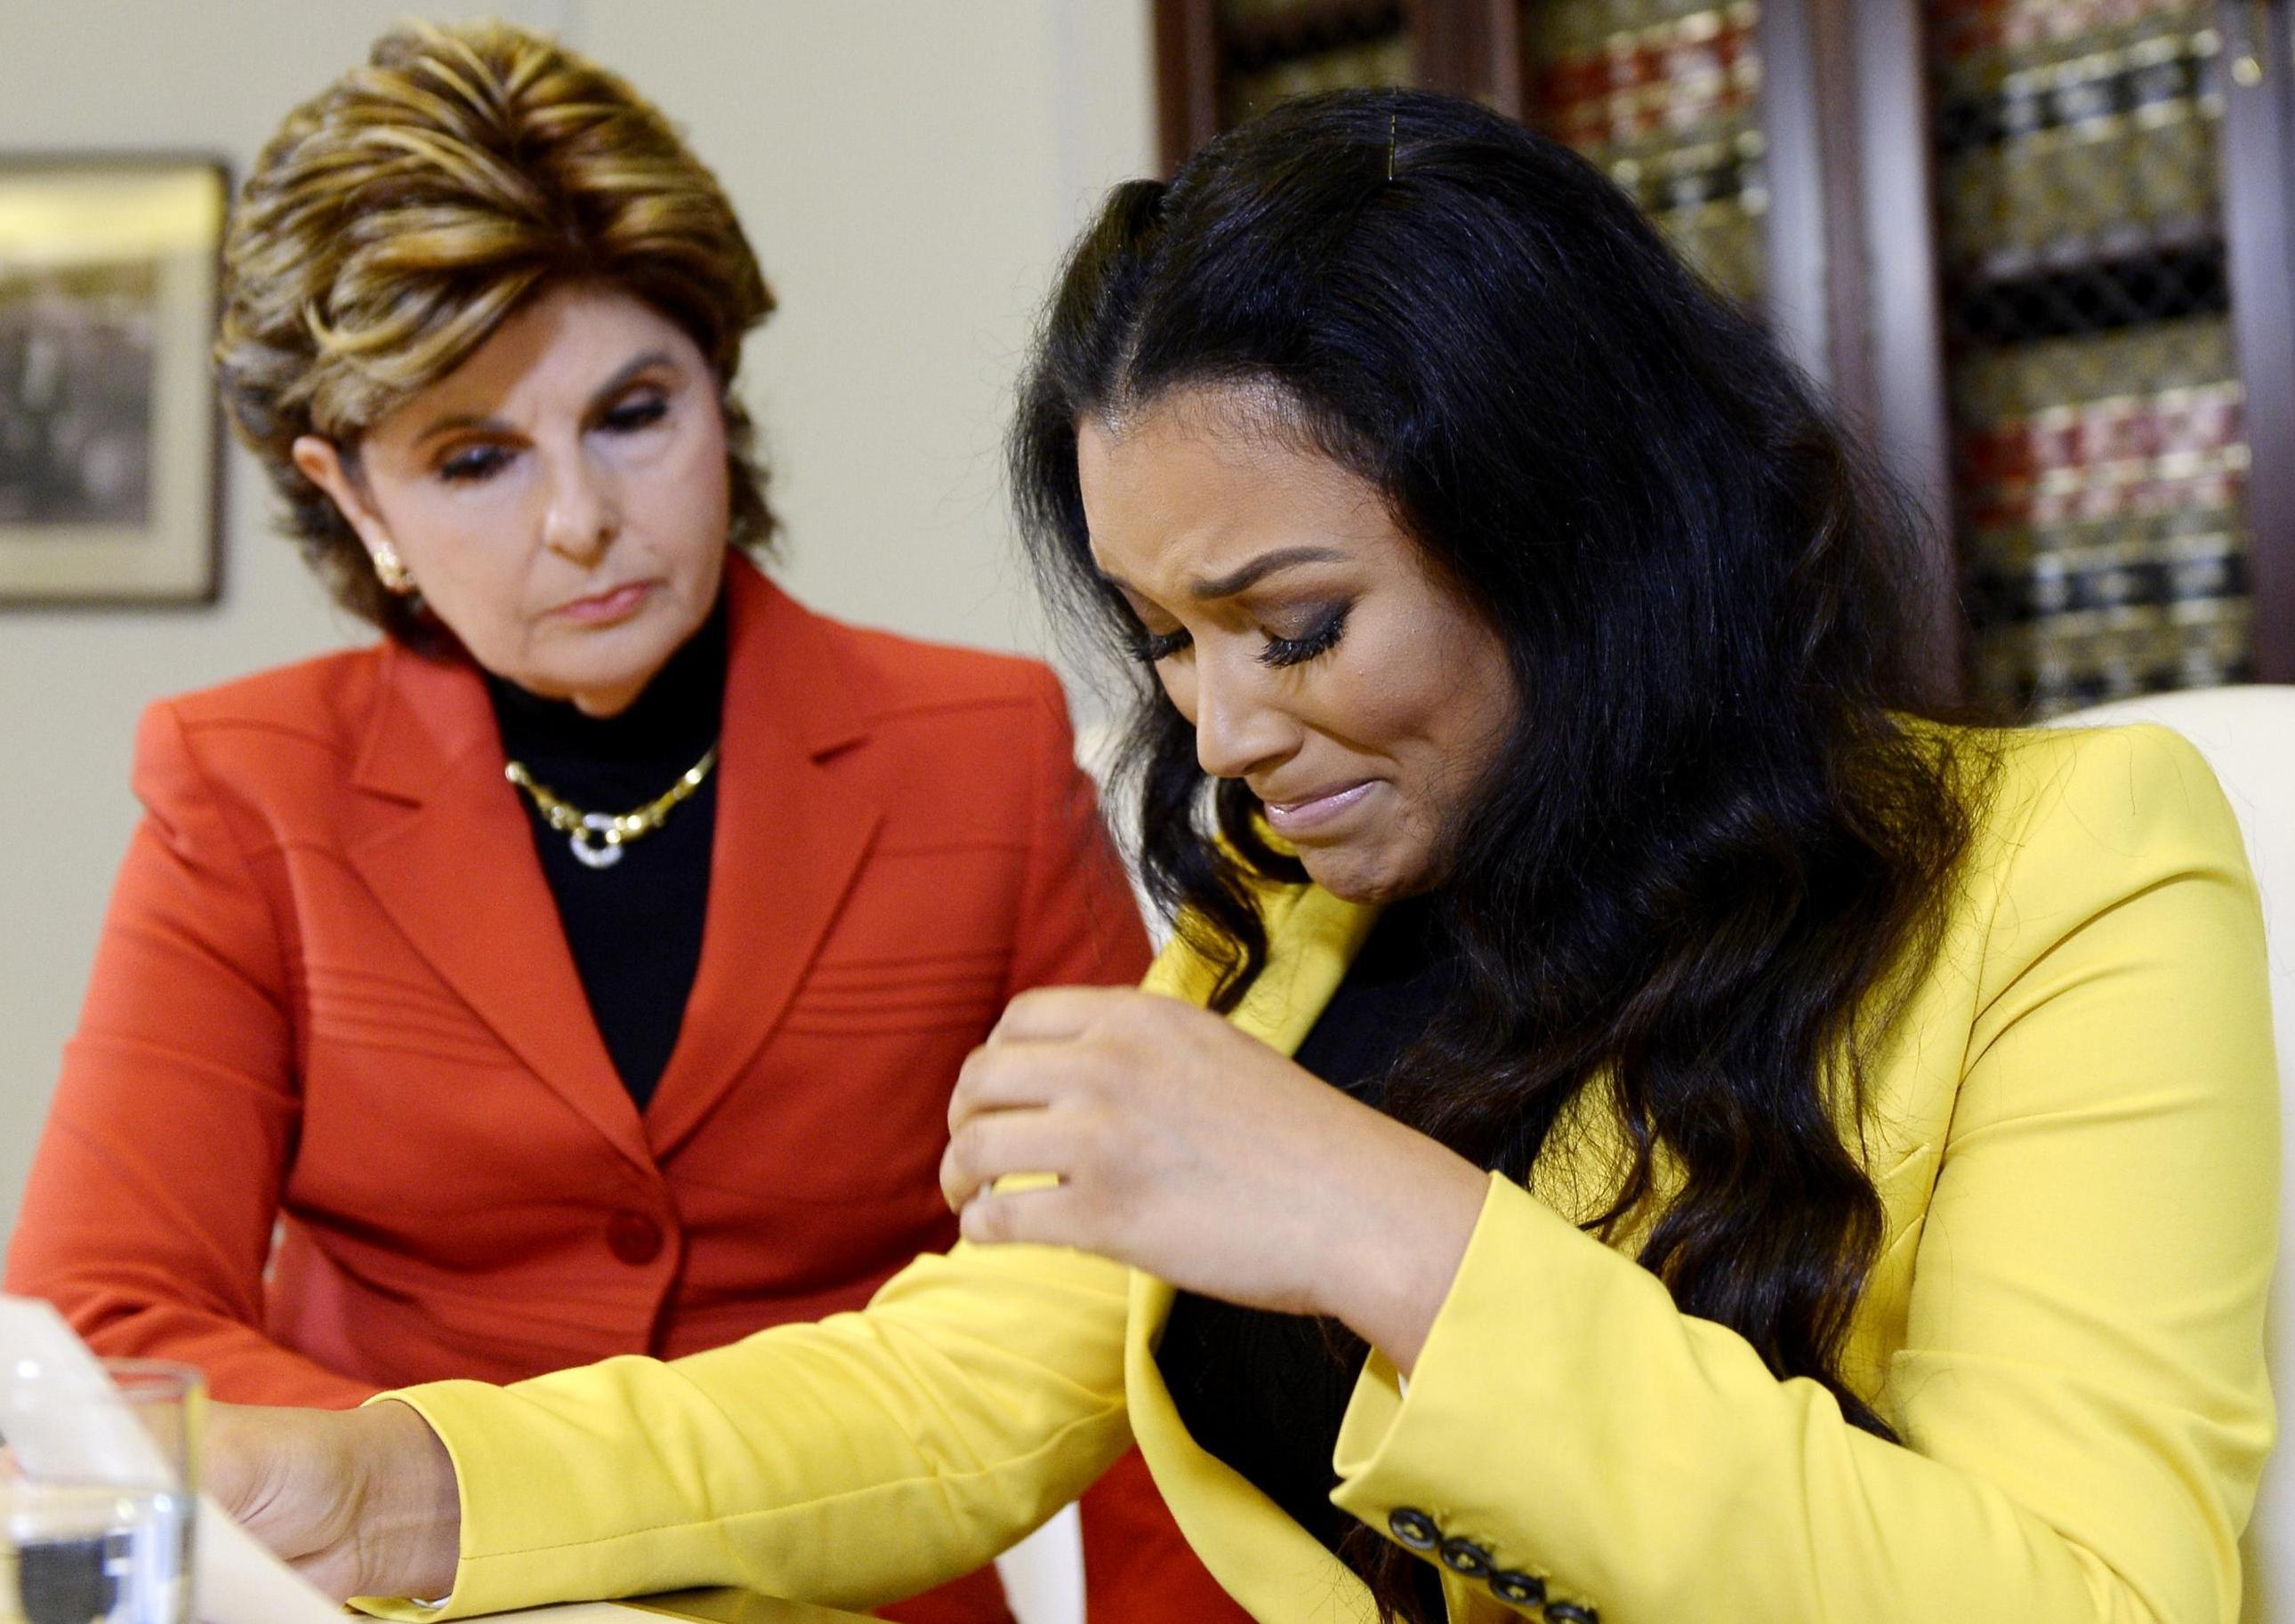 shantel jackson press conference has the public criticizing her gloria allred and shantel jackson